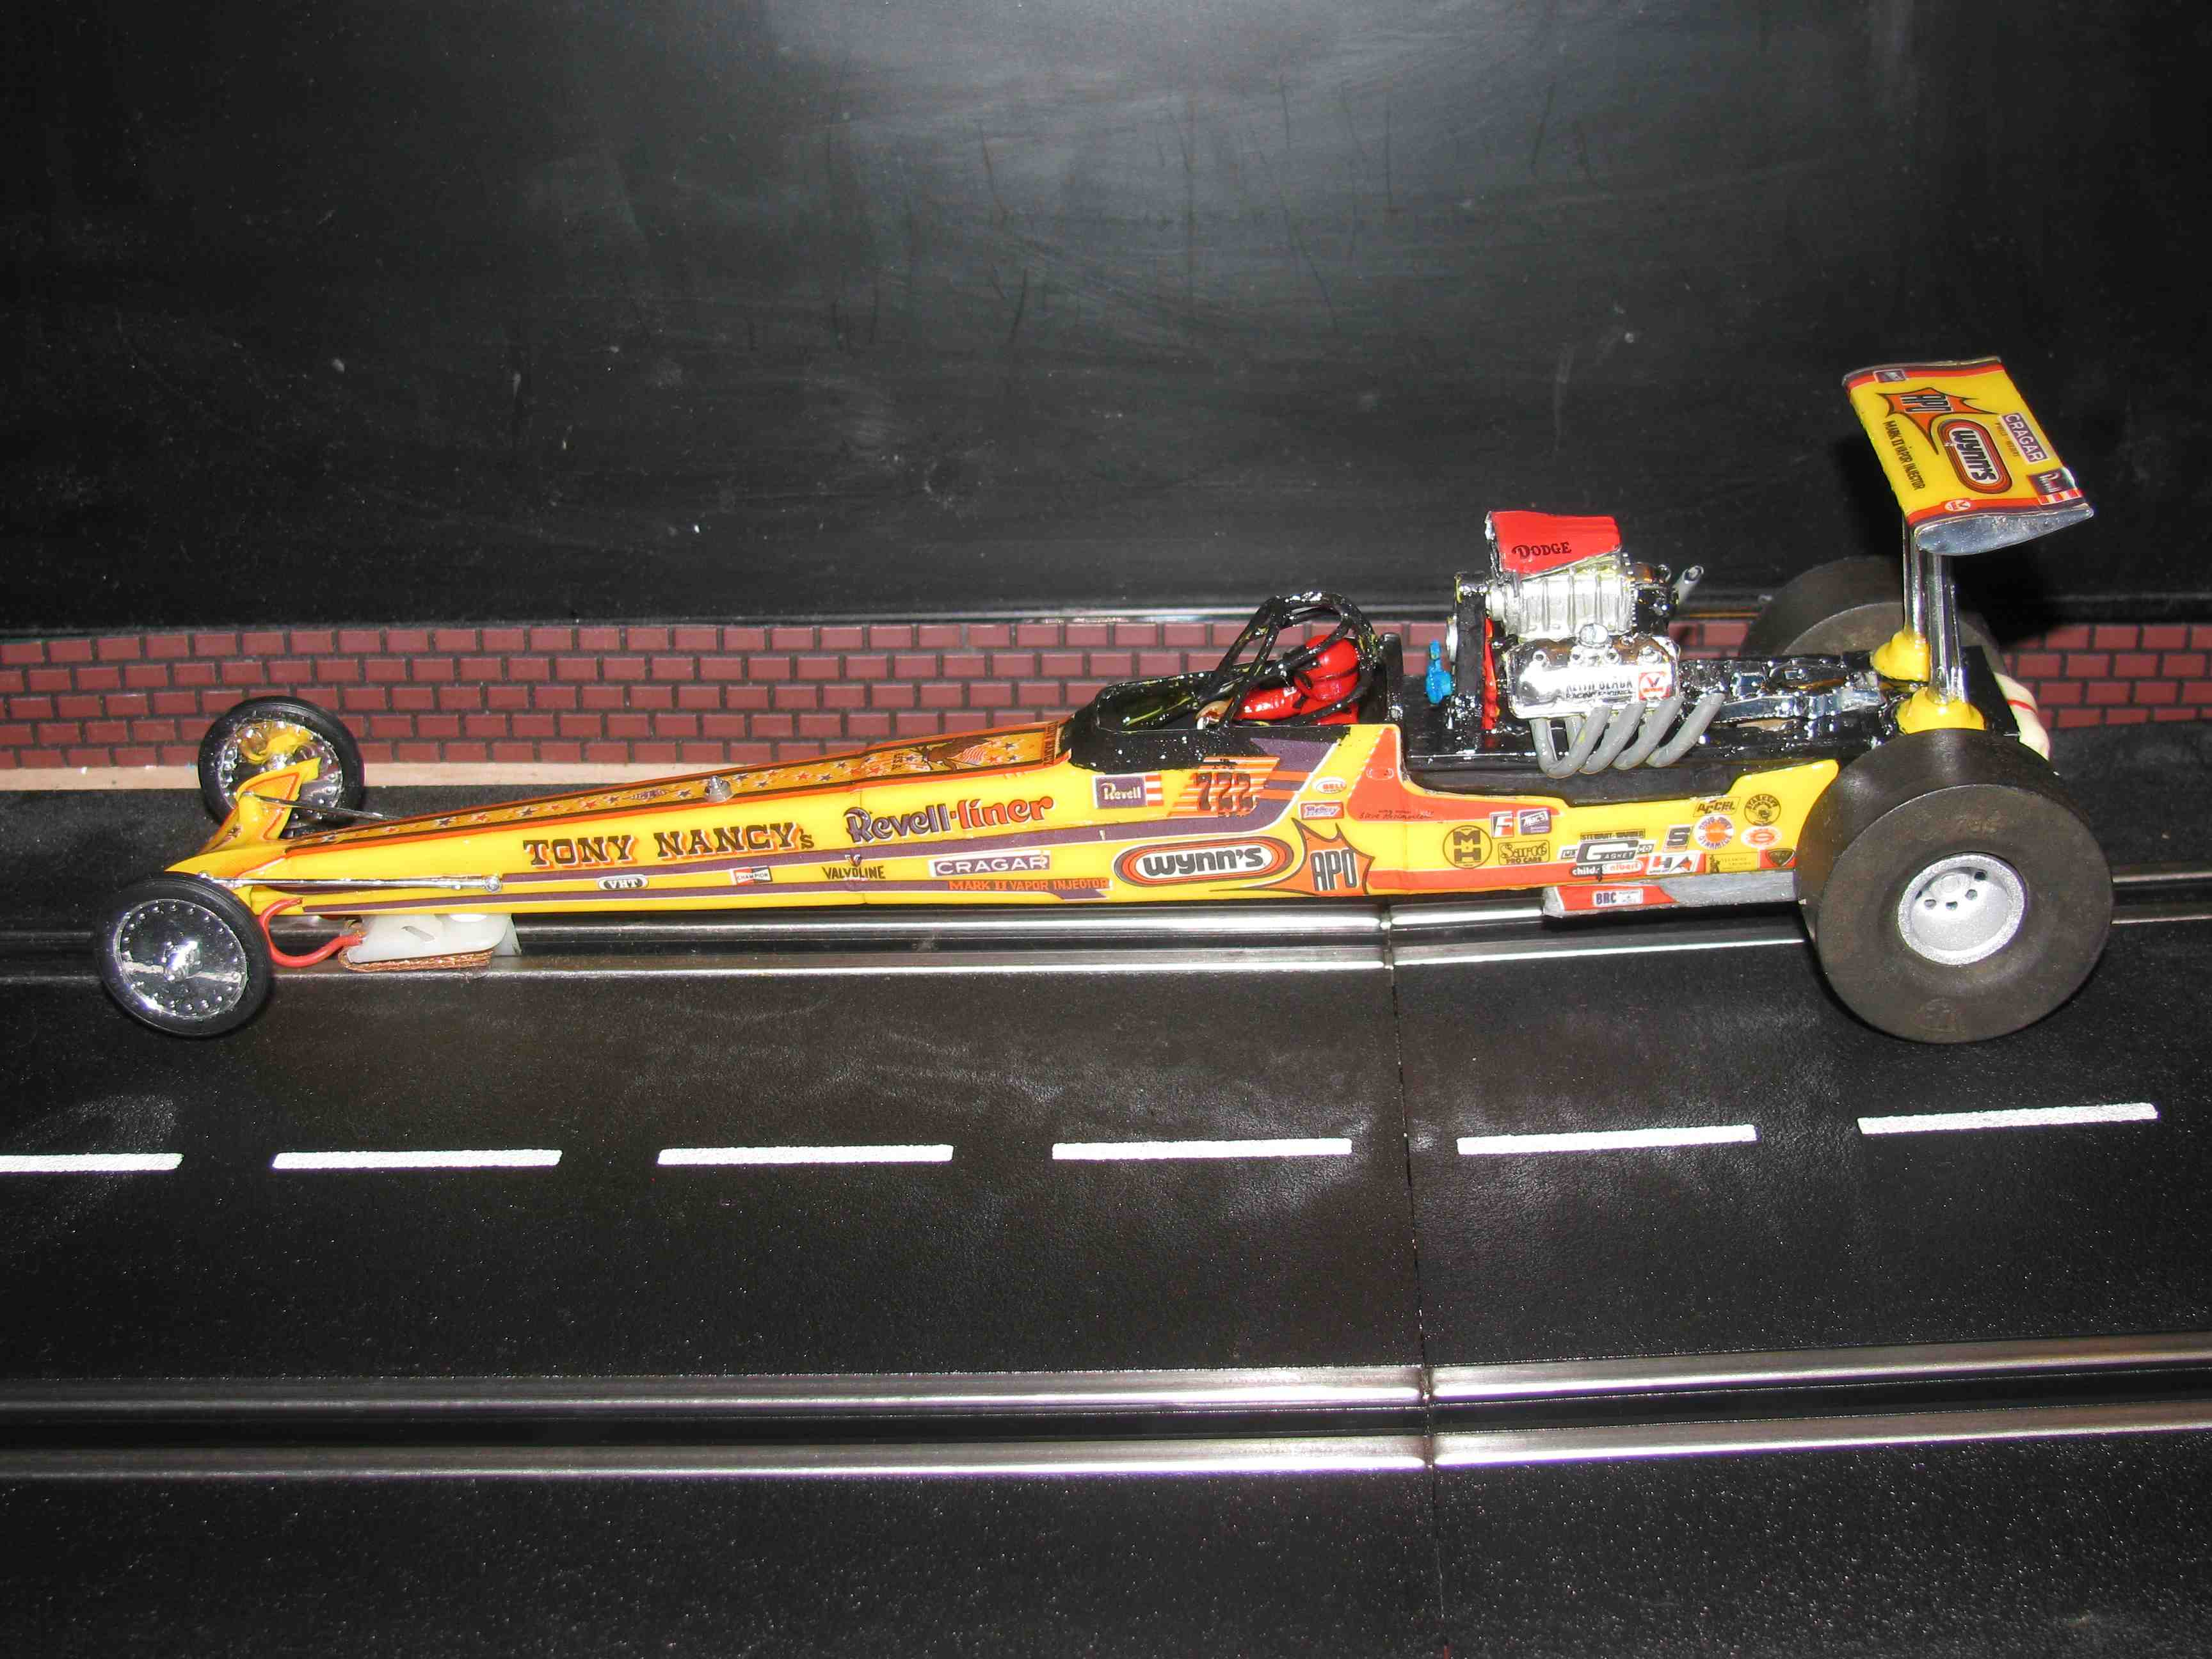 * SOLD * Vintage & Rare Classic Tony Nancy Wynns 722 Dragster Slot Car 1/24 Scale